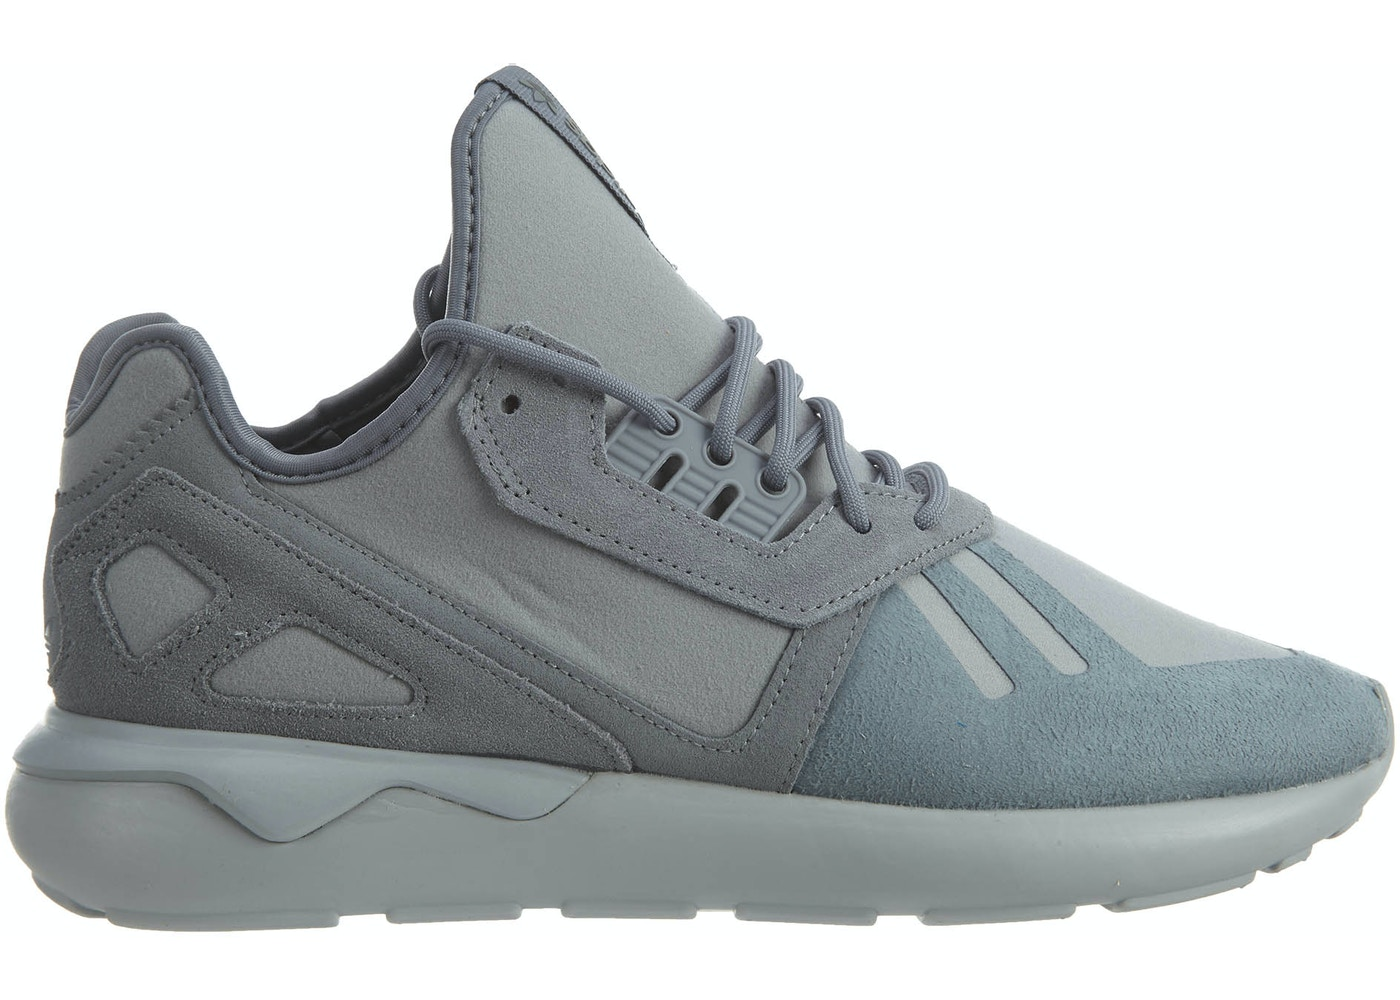 factory price d33b8 aefd8 adidas Tubular Runner Grey/Grey